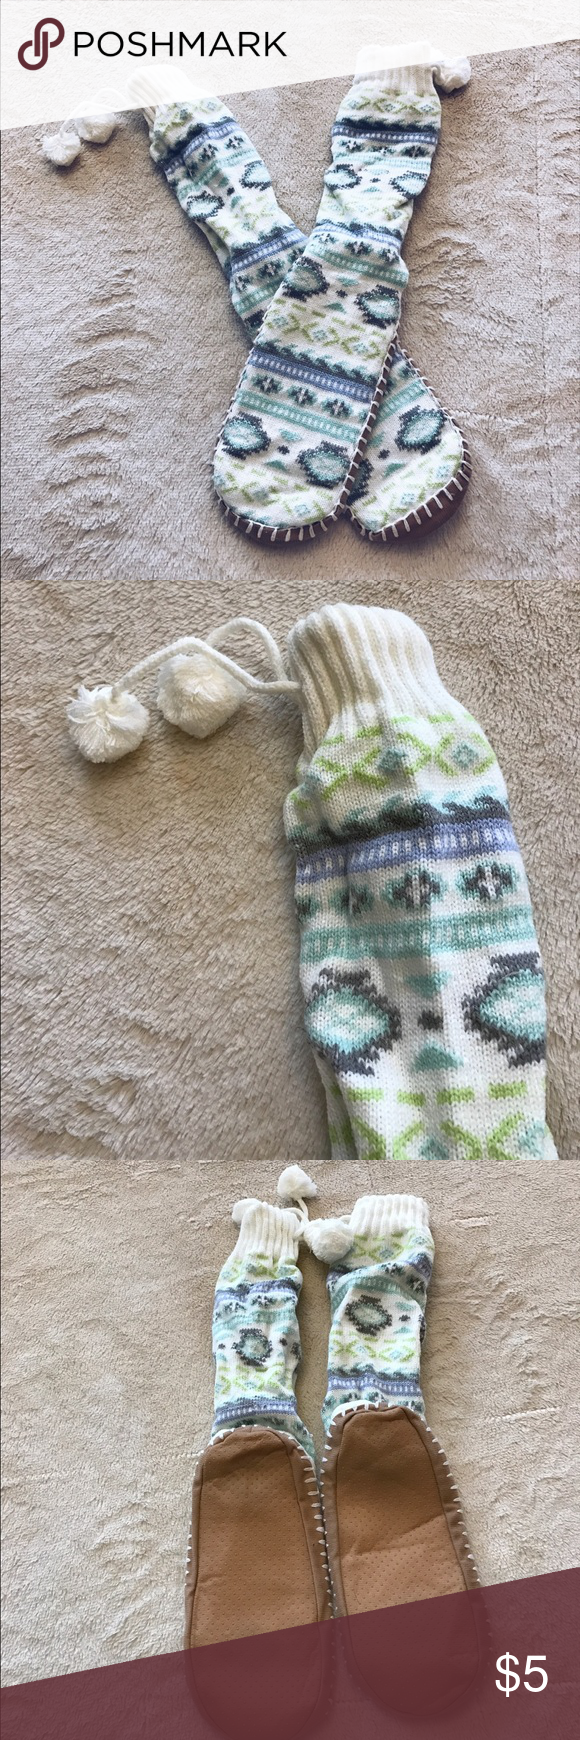 Slipper socks Slipper socks. Only worn once! They're technically one size fits all but I can give you the measurements if you're interested Shoes Slippers